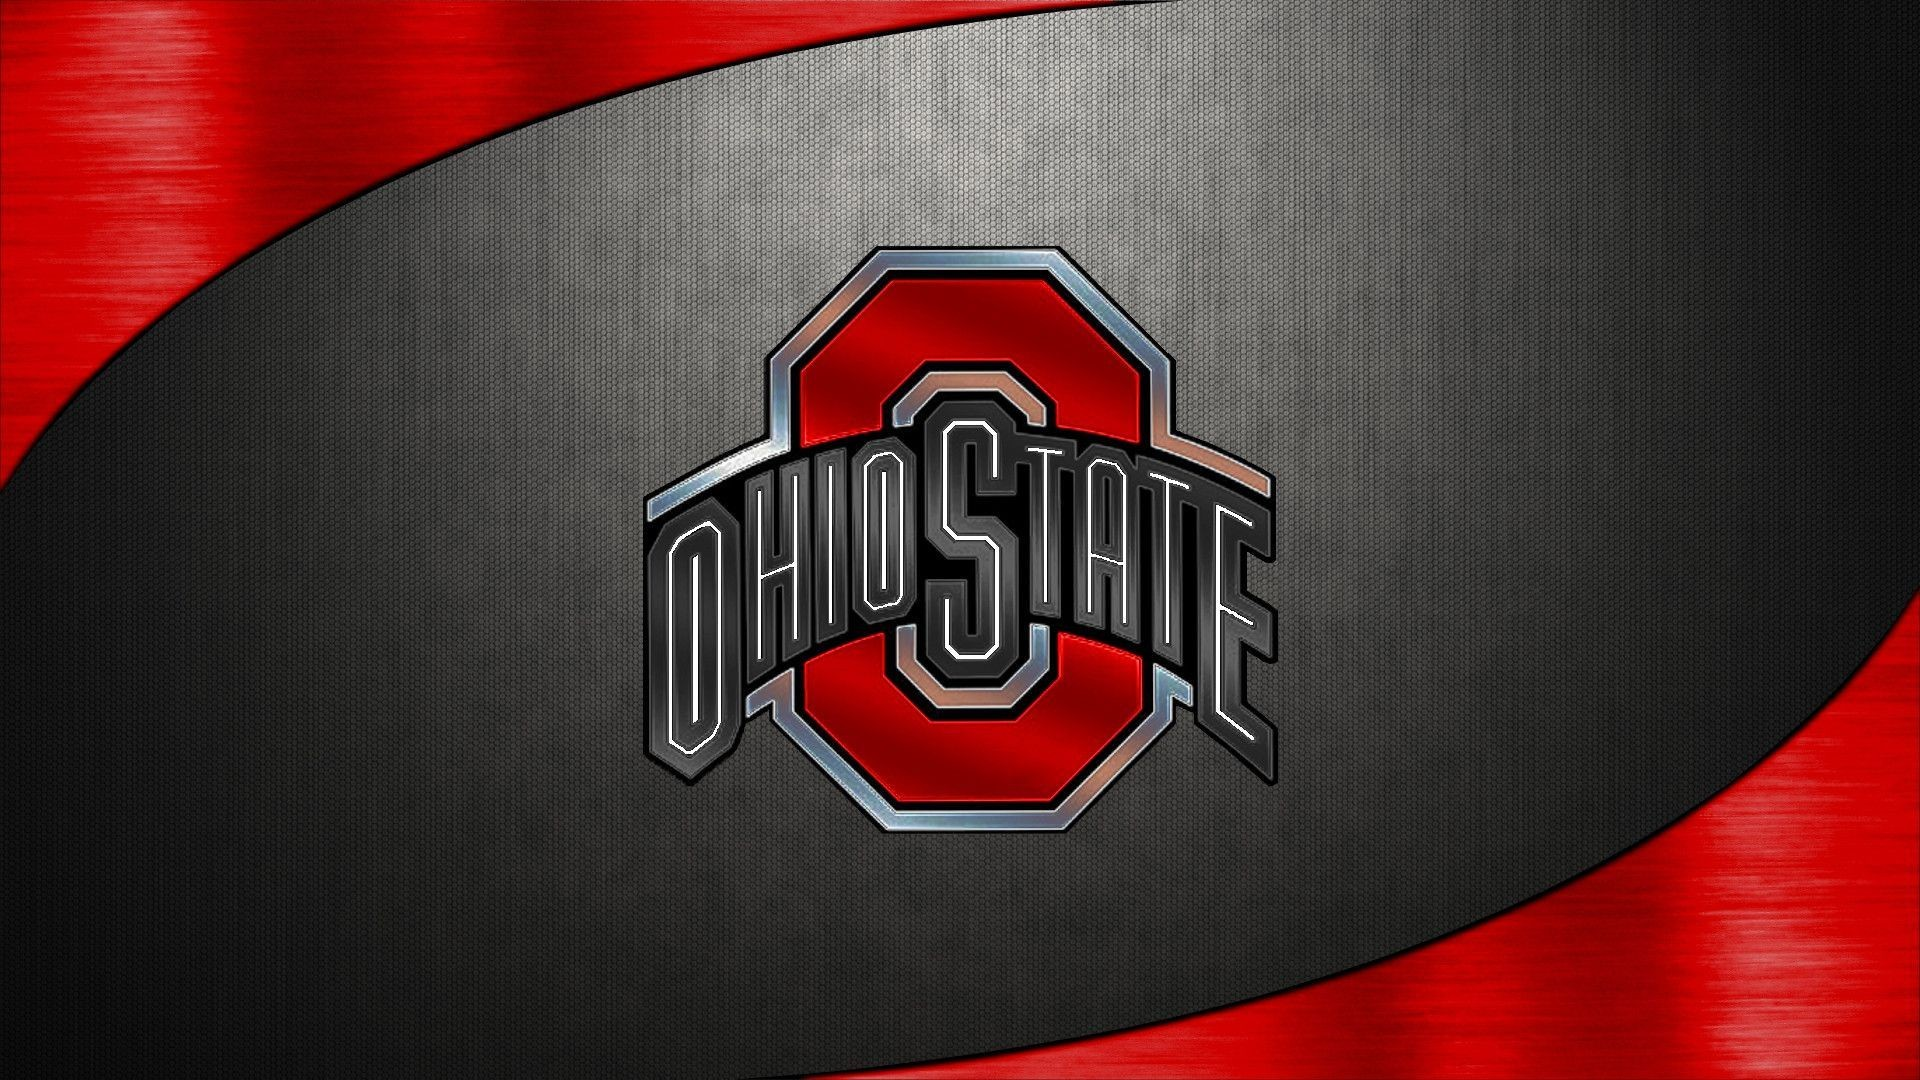 1920x1080 Celebrate The Game With Ohio State Michigan Wallpapers and